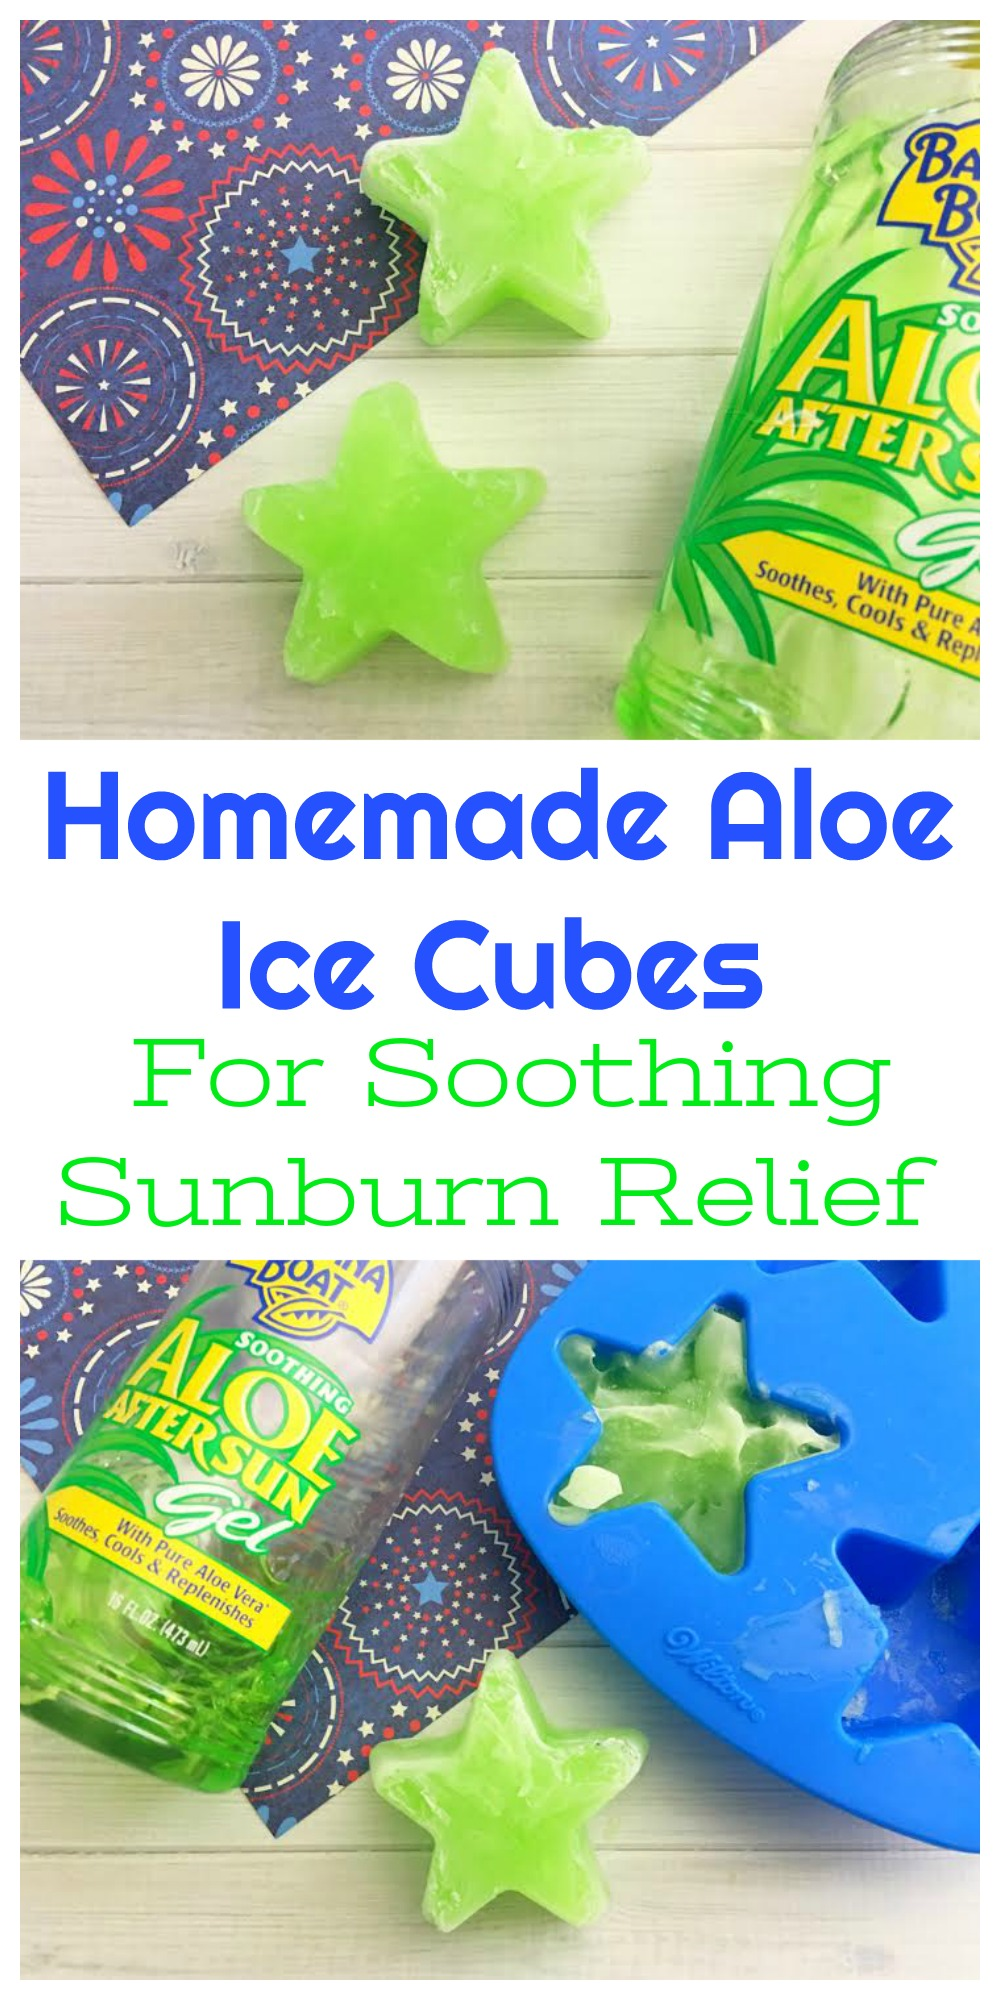 Sometimes even if you have SPF 150 sunblock on, you still end up with a sunburn. If that happens, these aloe ice cubes will help soothe it.